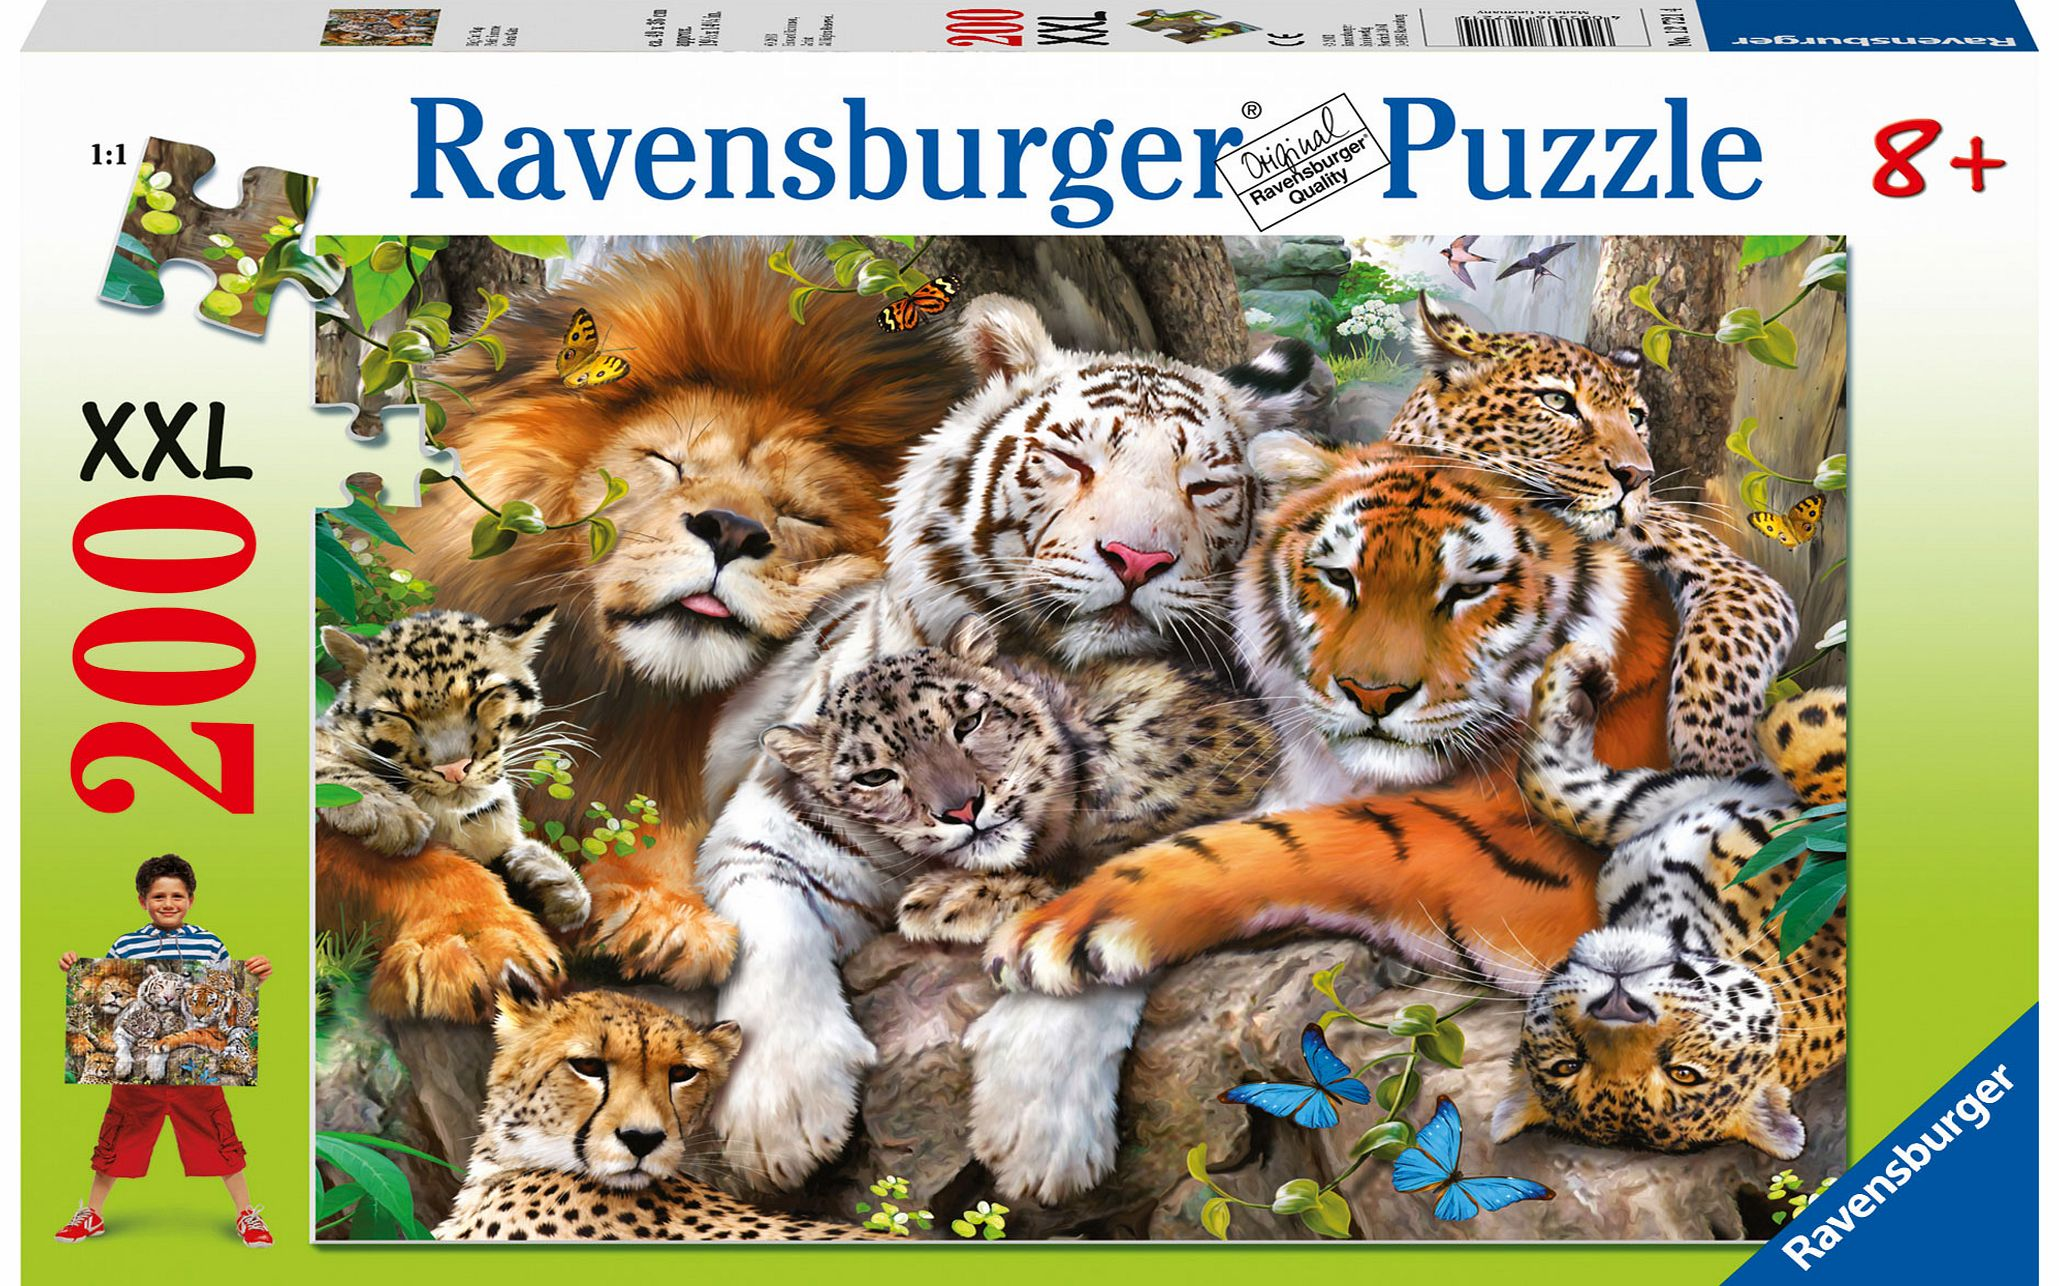 Big Cat Nap 200 Piece Jigsaw Puzzle - XXL